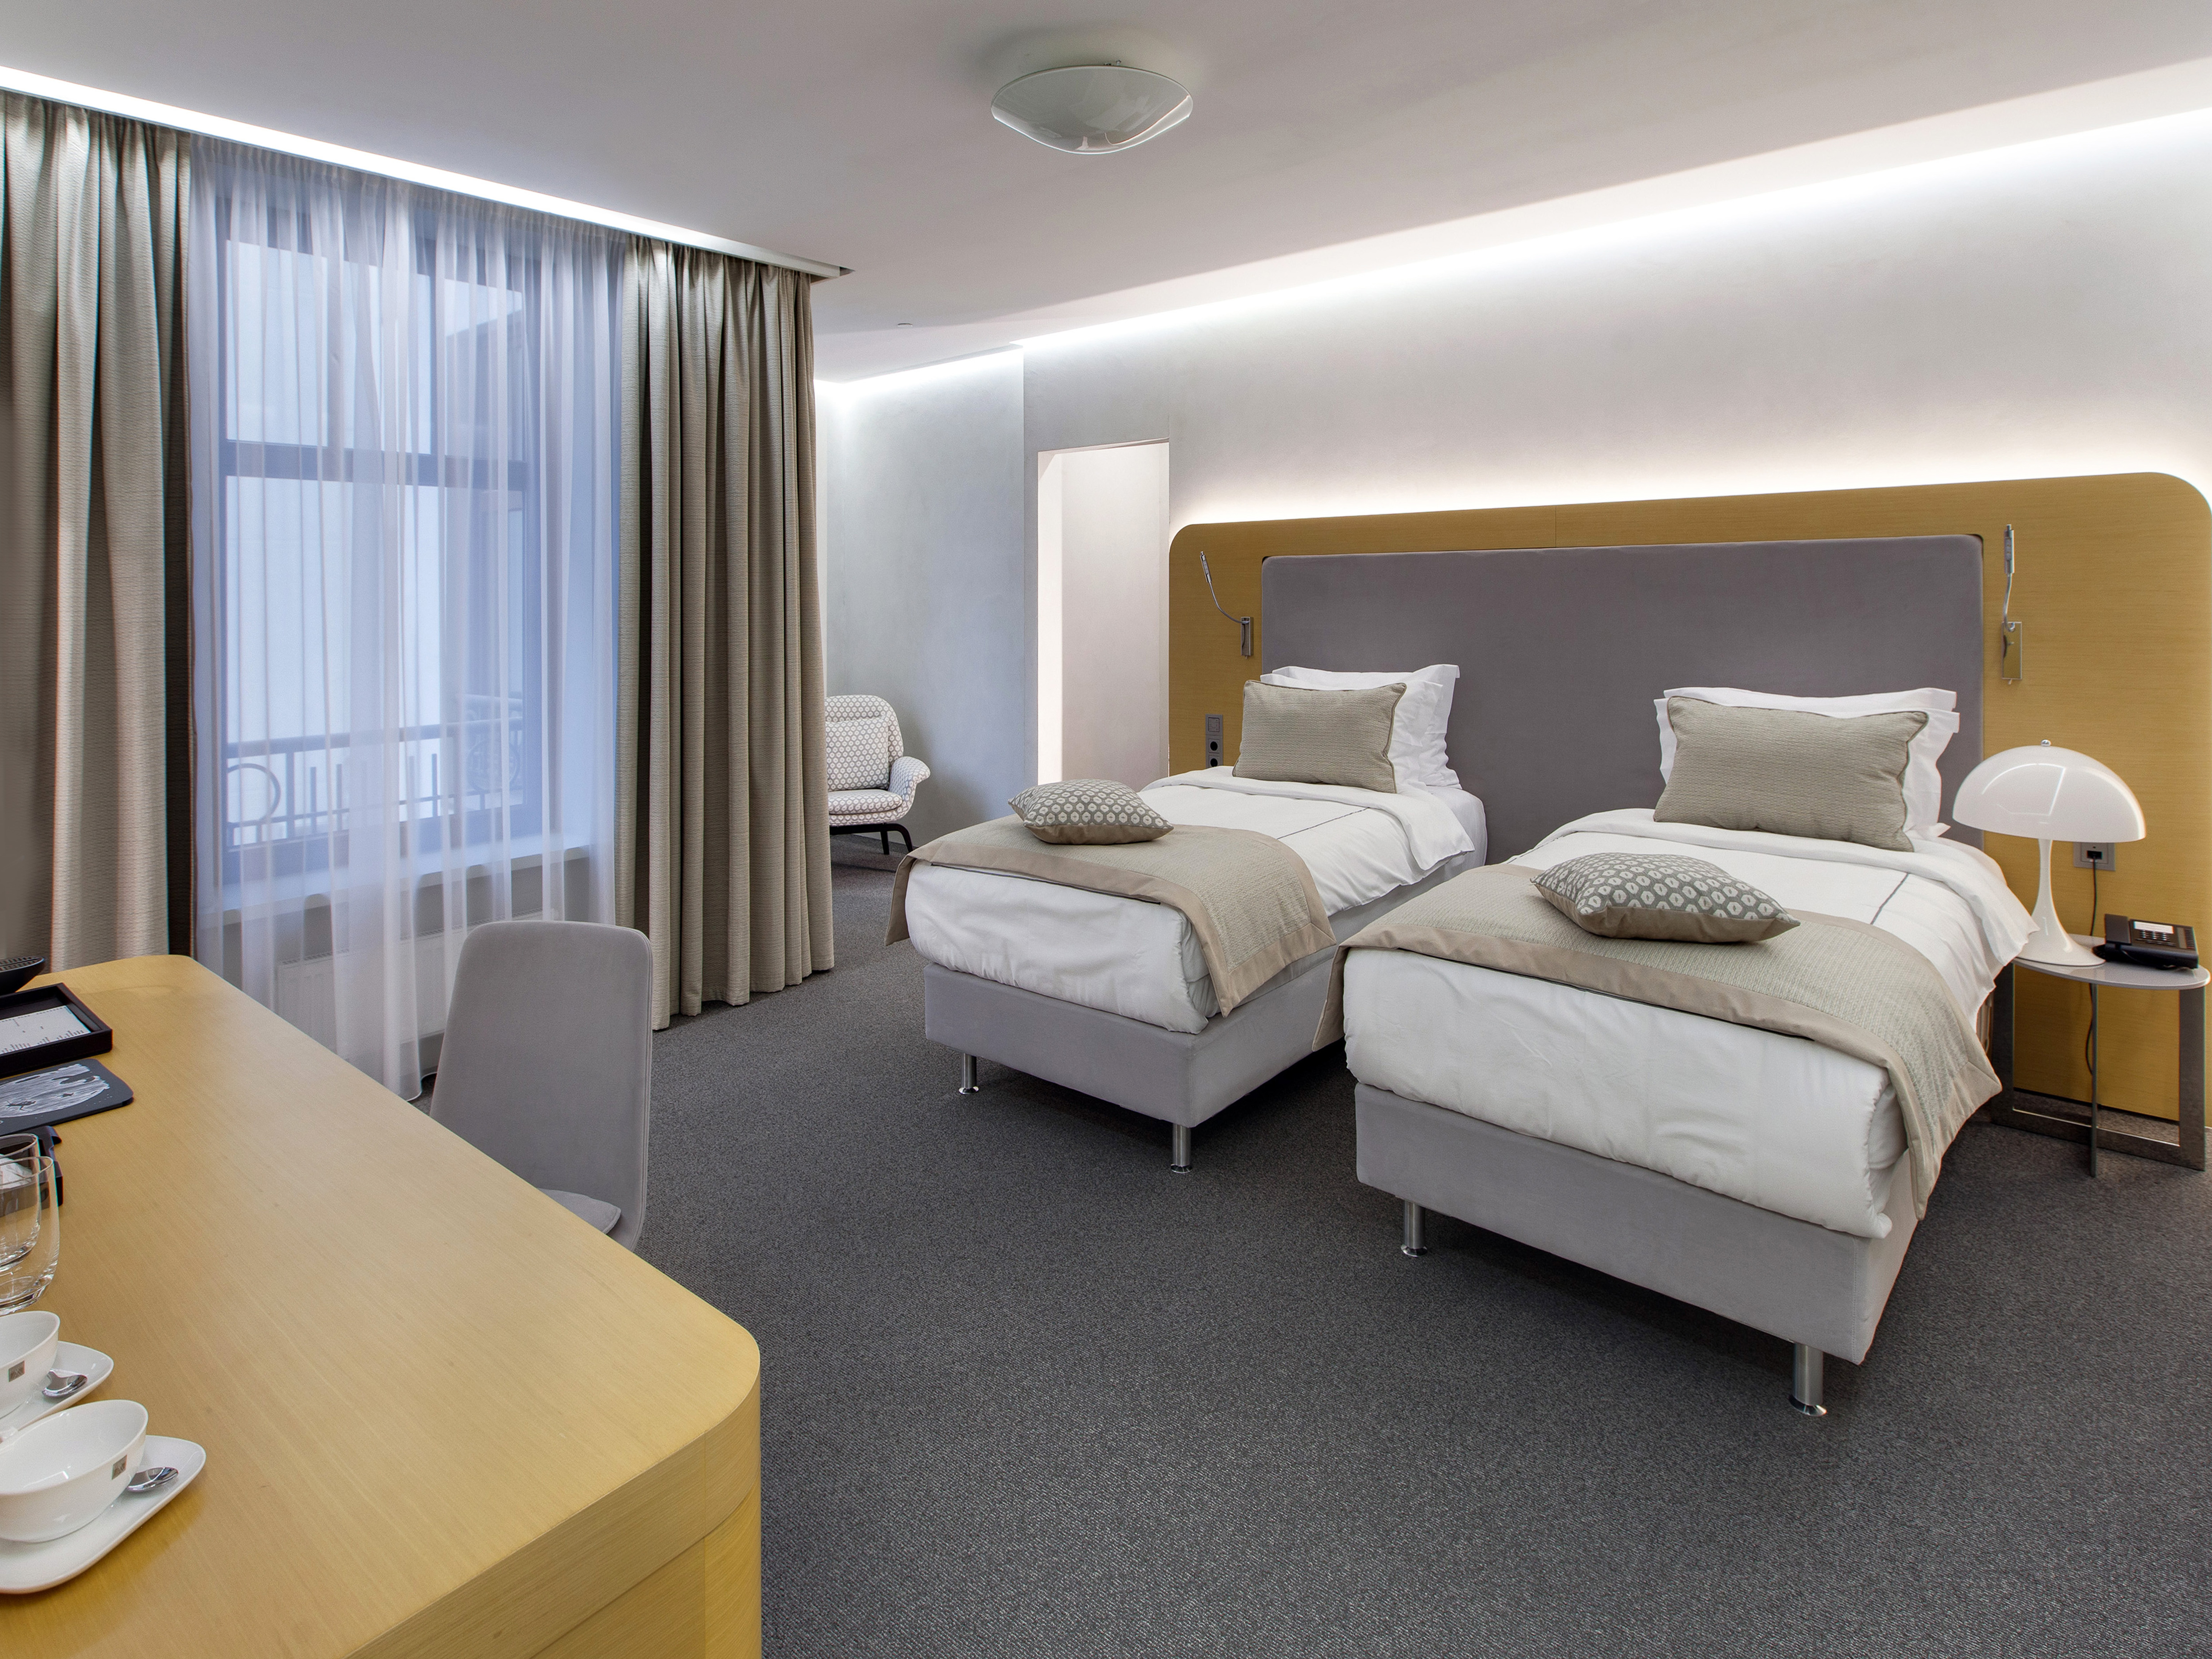 standart-hotel-moscow-deluxe-twin-room-v2-R-r.jpg